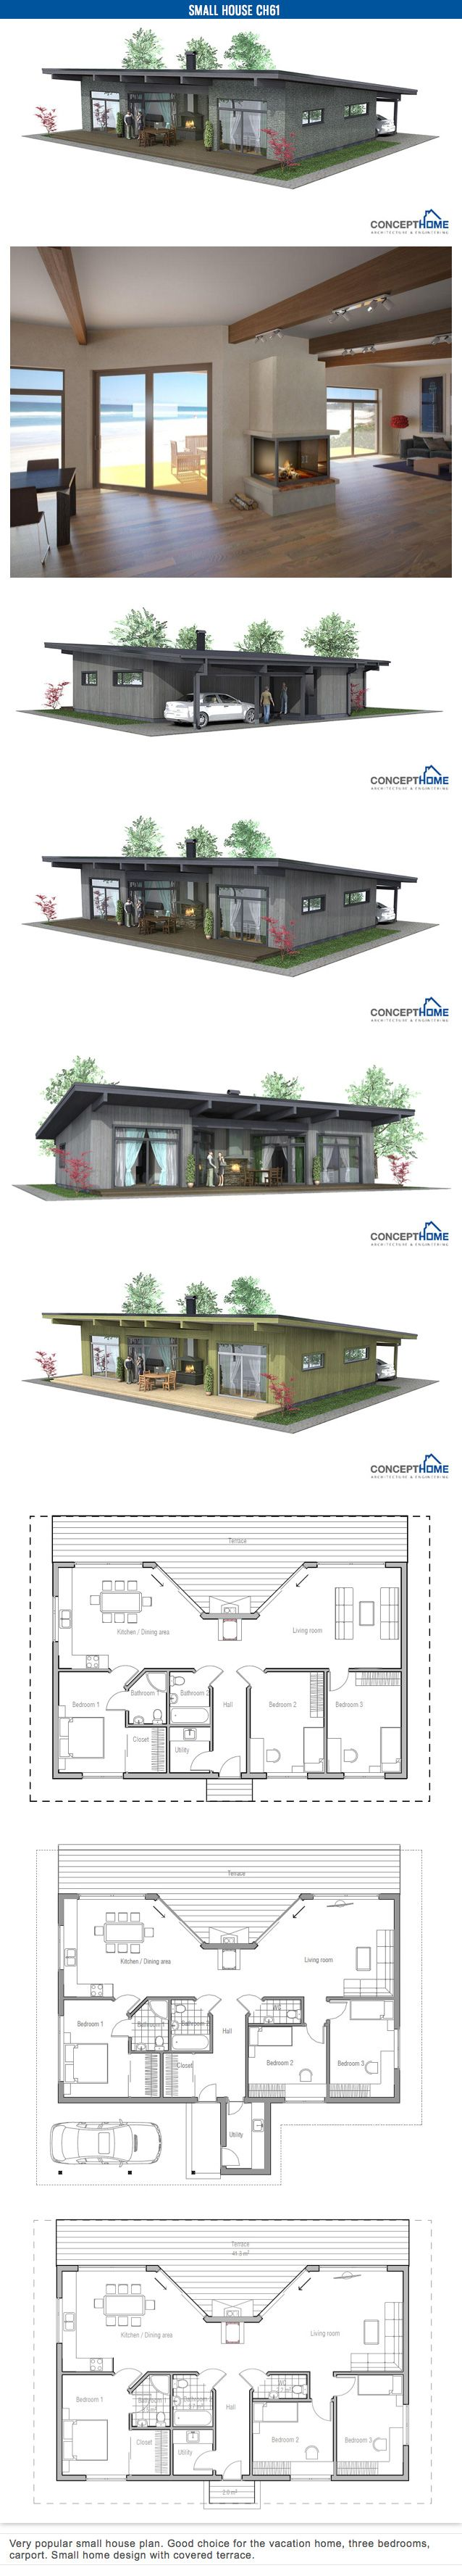 Wedge house plans